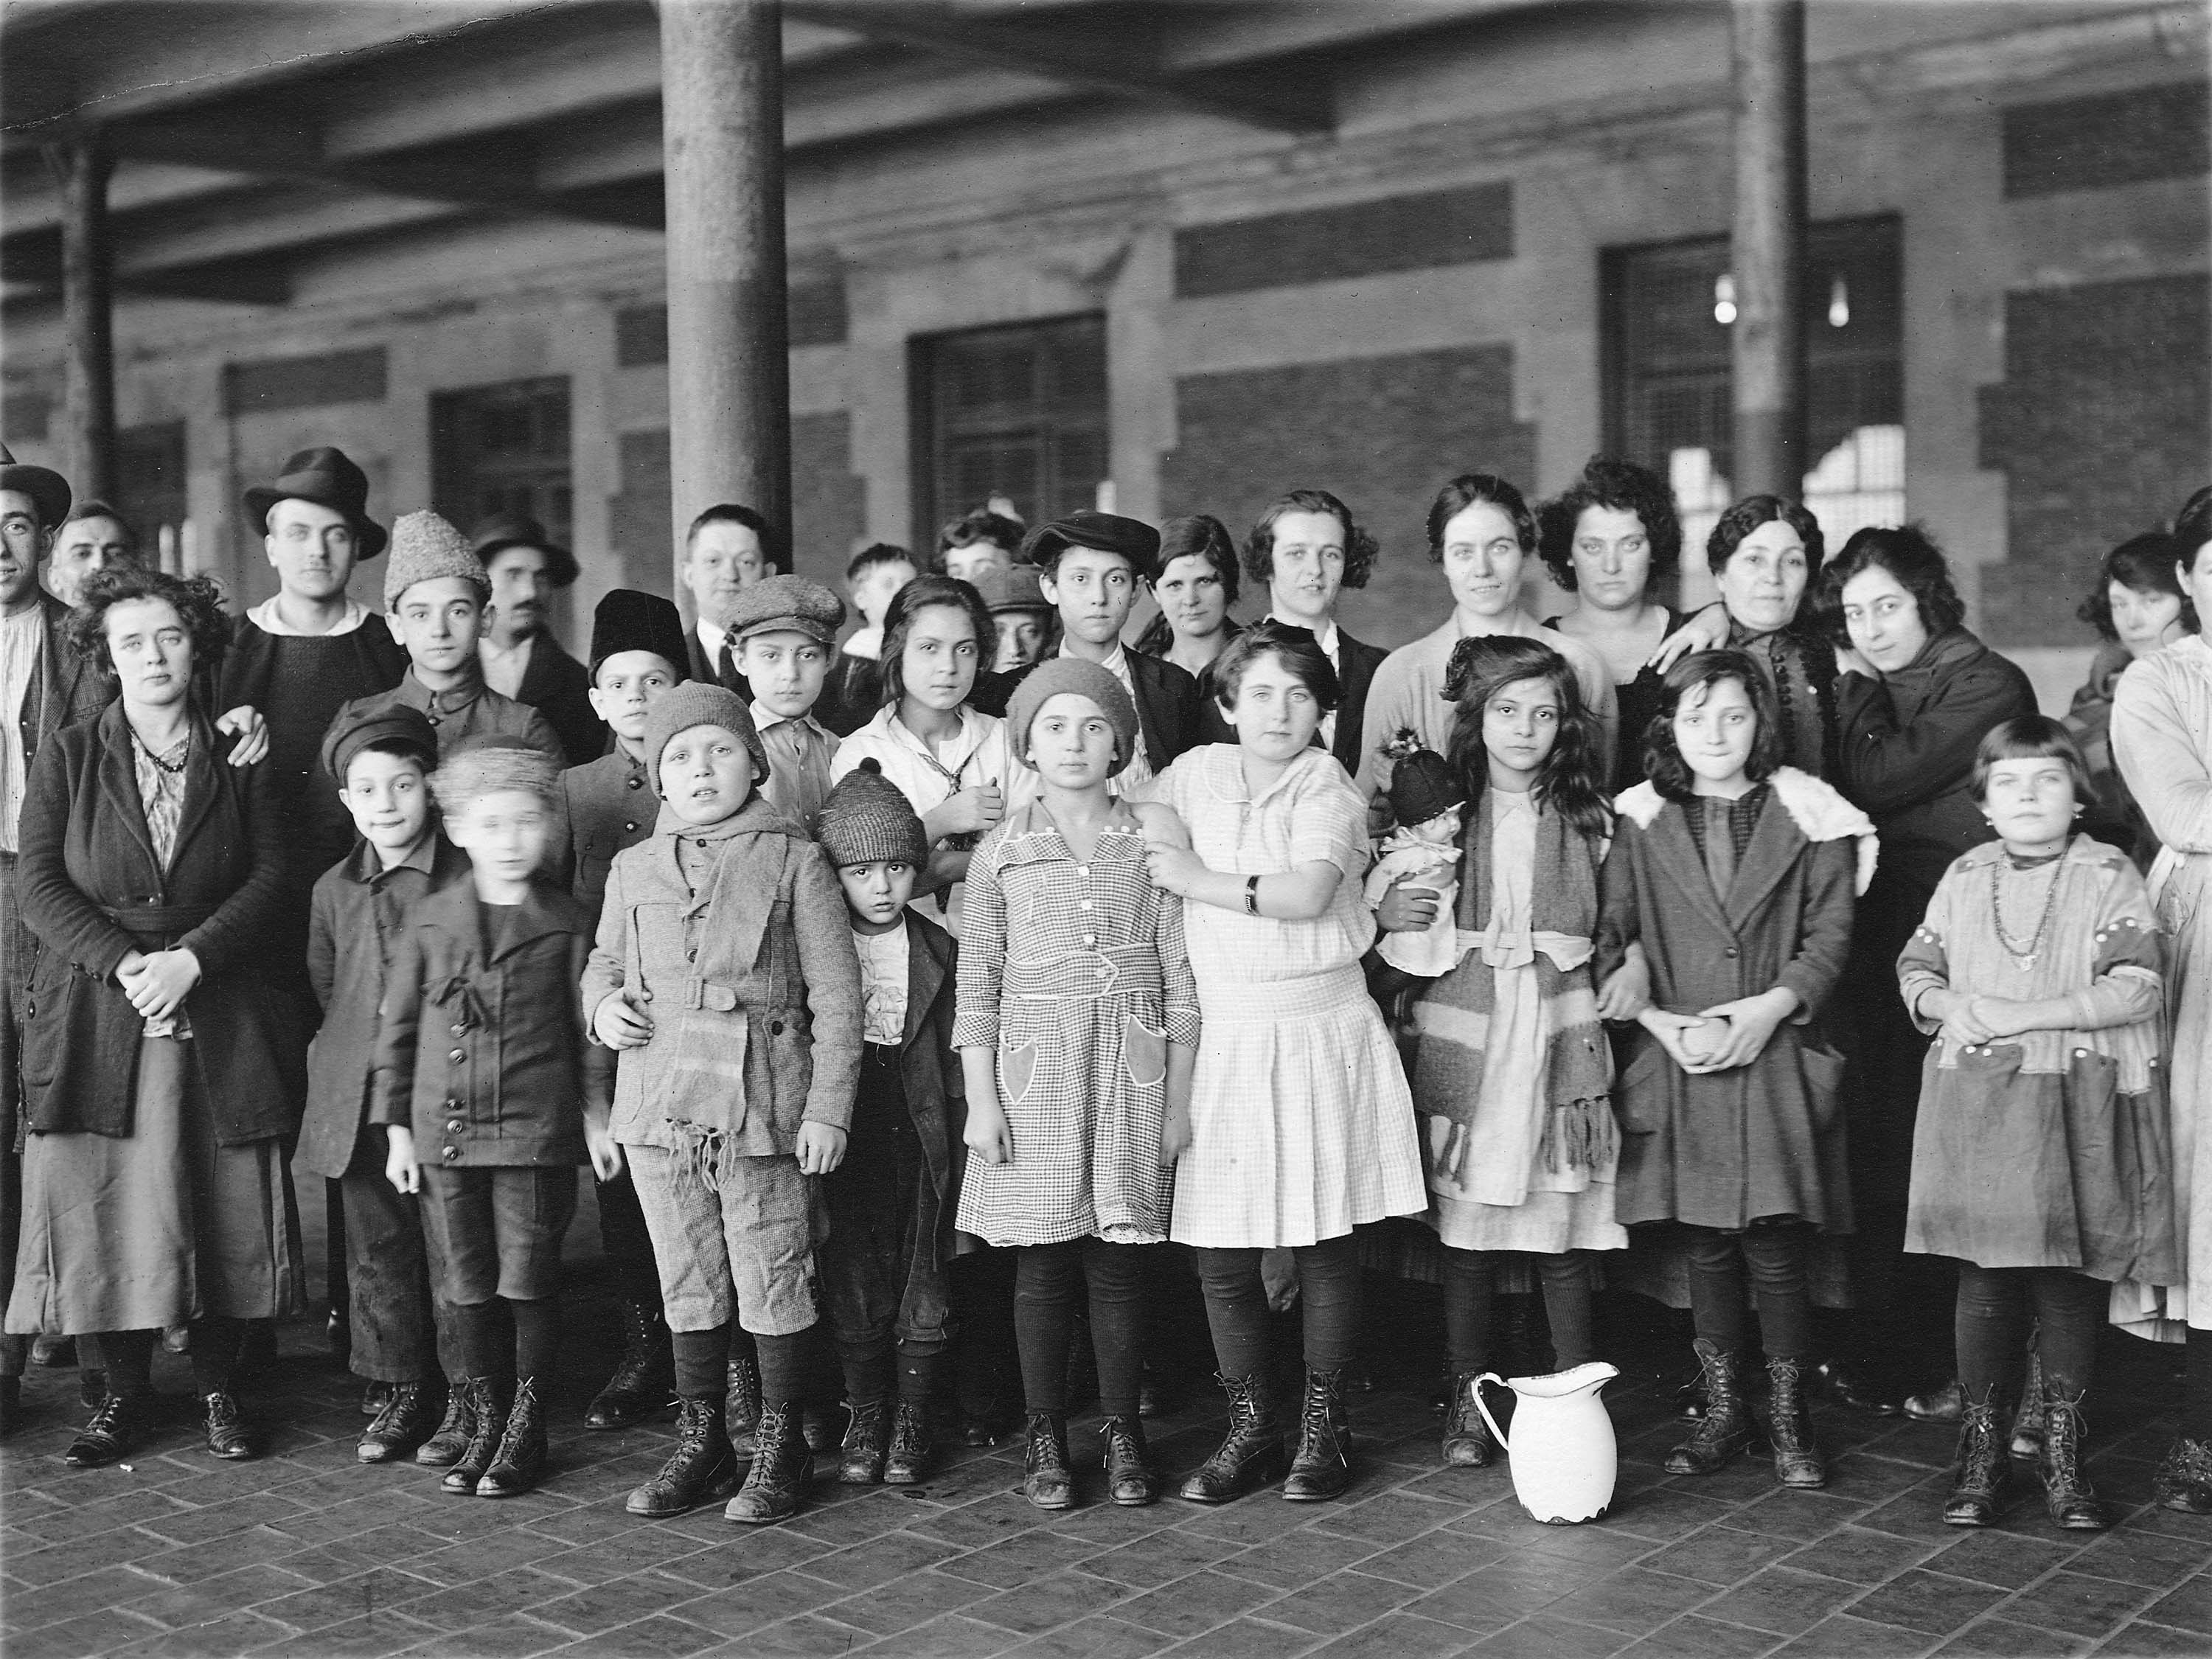 From: http://www.archives.gov/press/press-kits/picturing-the-century-photos/images/immigrant-children-ellis-island.jpg